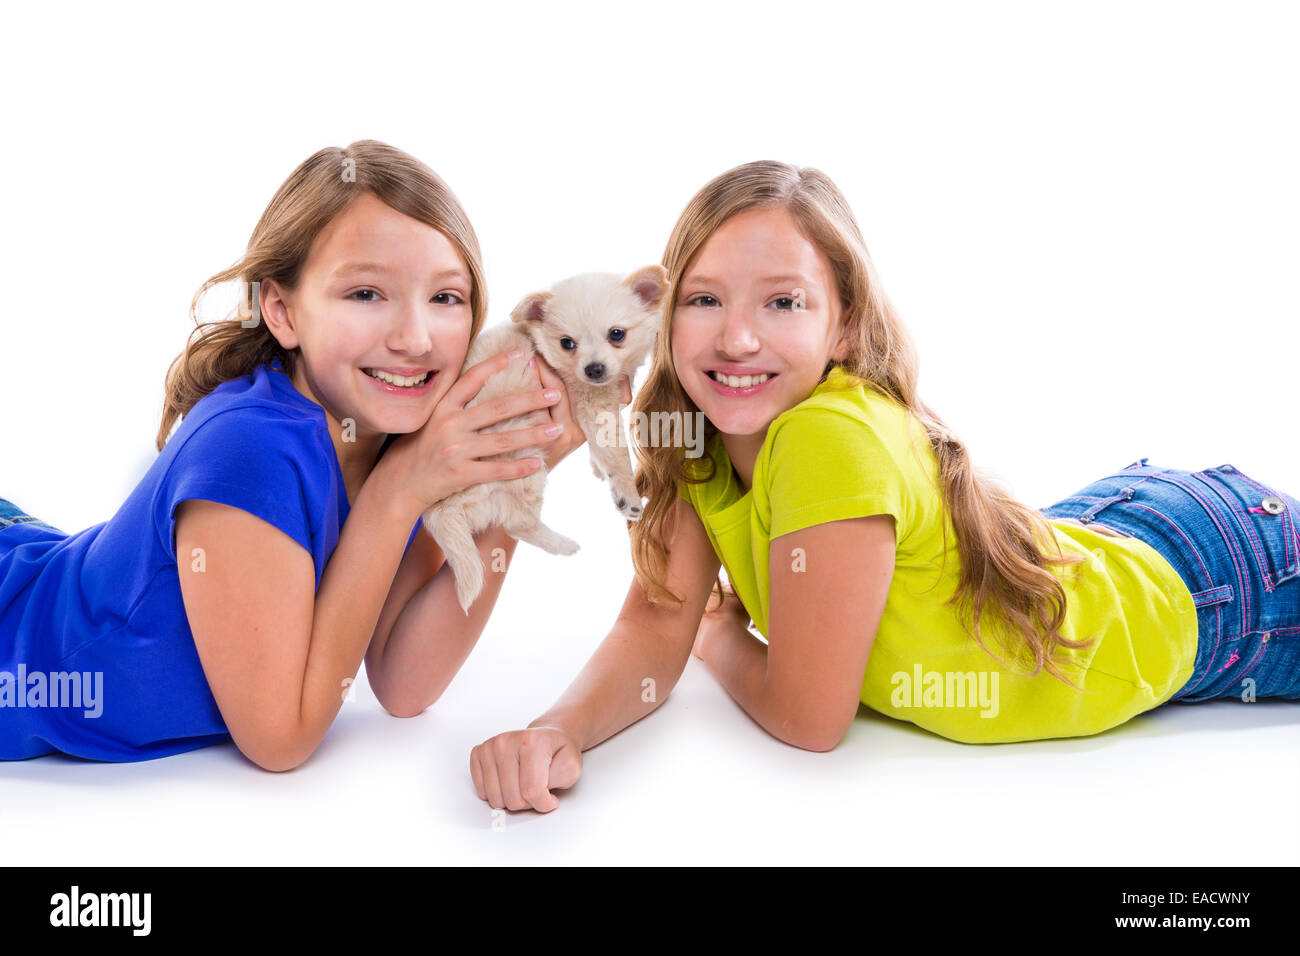 happy twin sister kid girls and puppy dog lying playing on white background - Stock Image